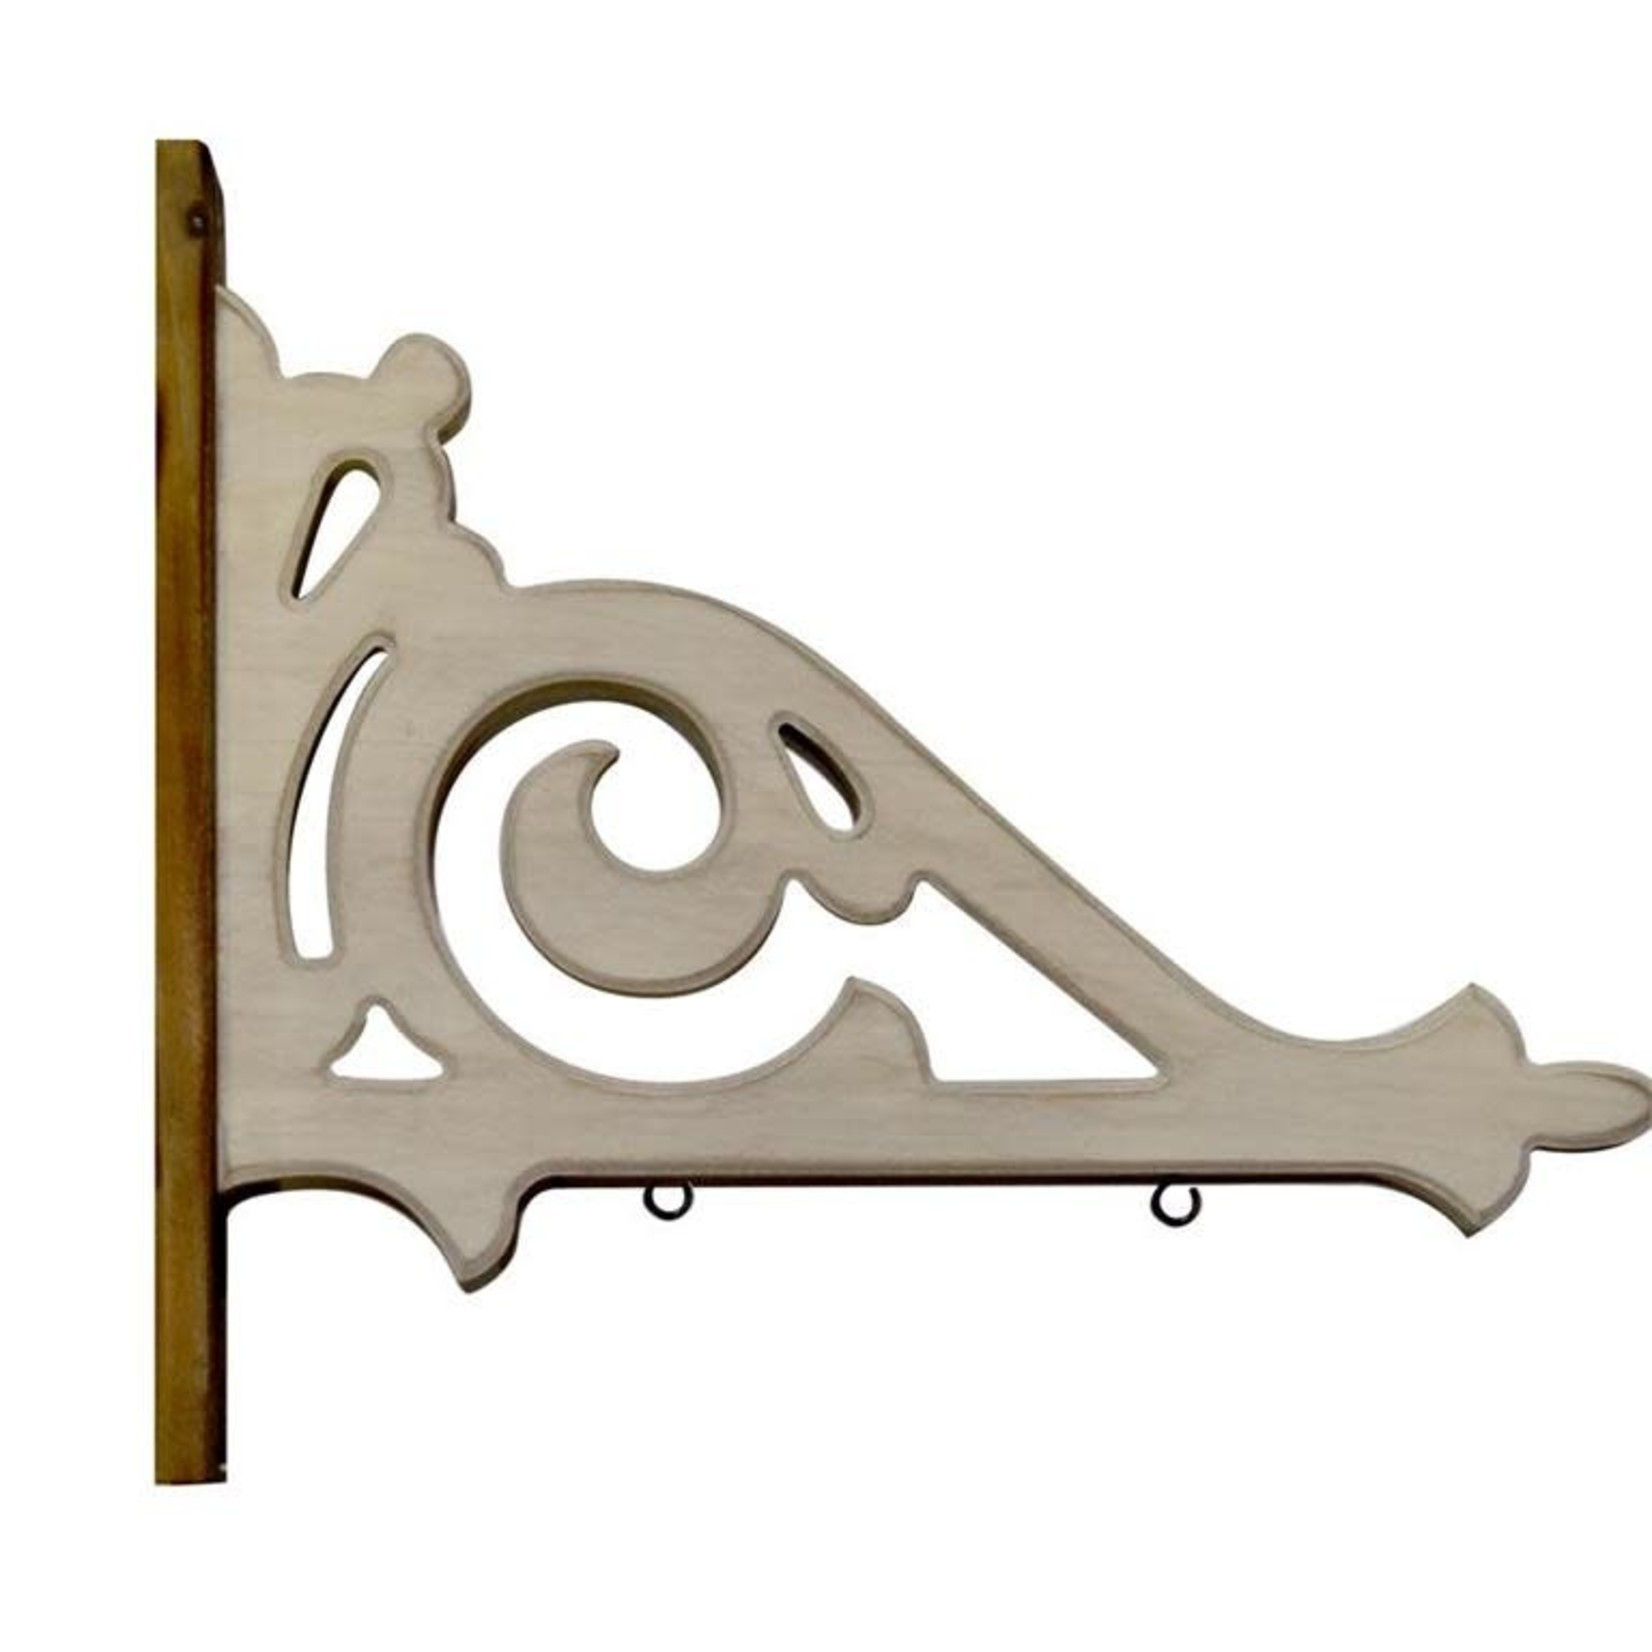 17 INCH ARCHITECTURAL WOOD ARROW HLDR